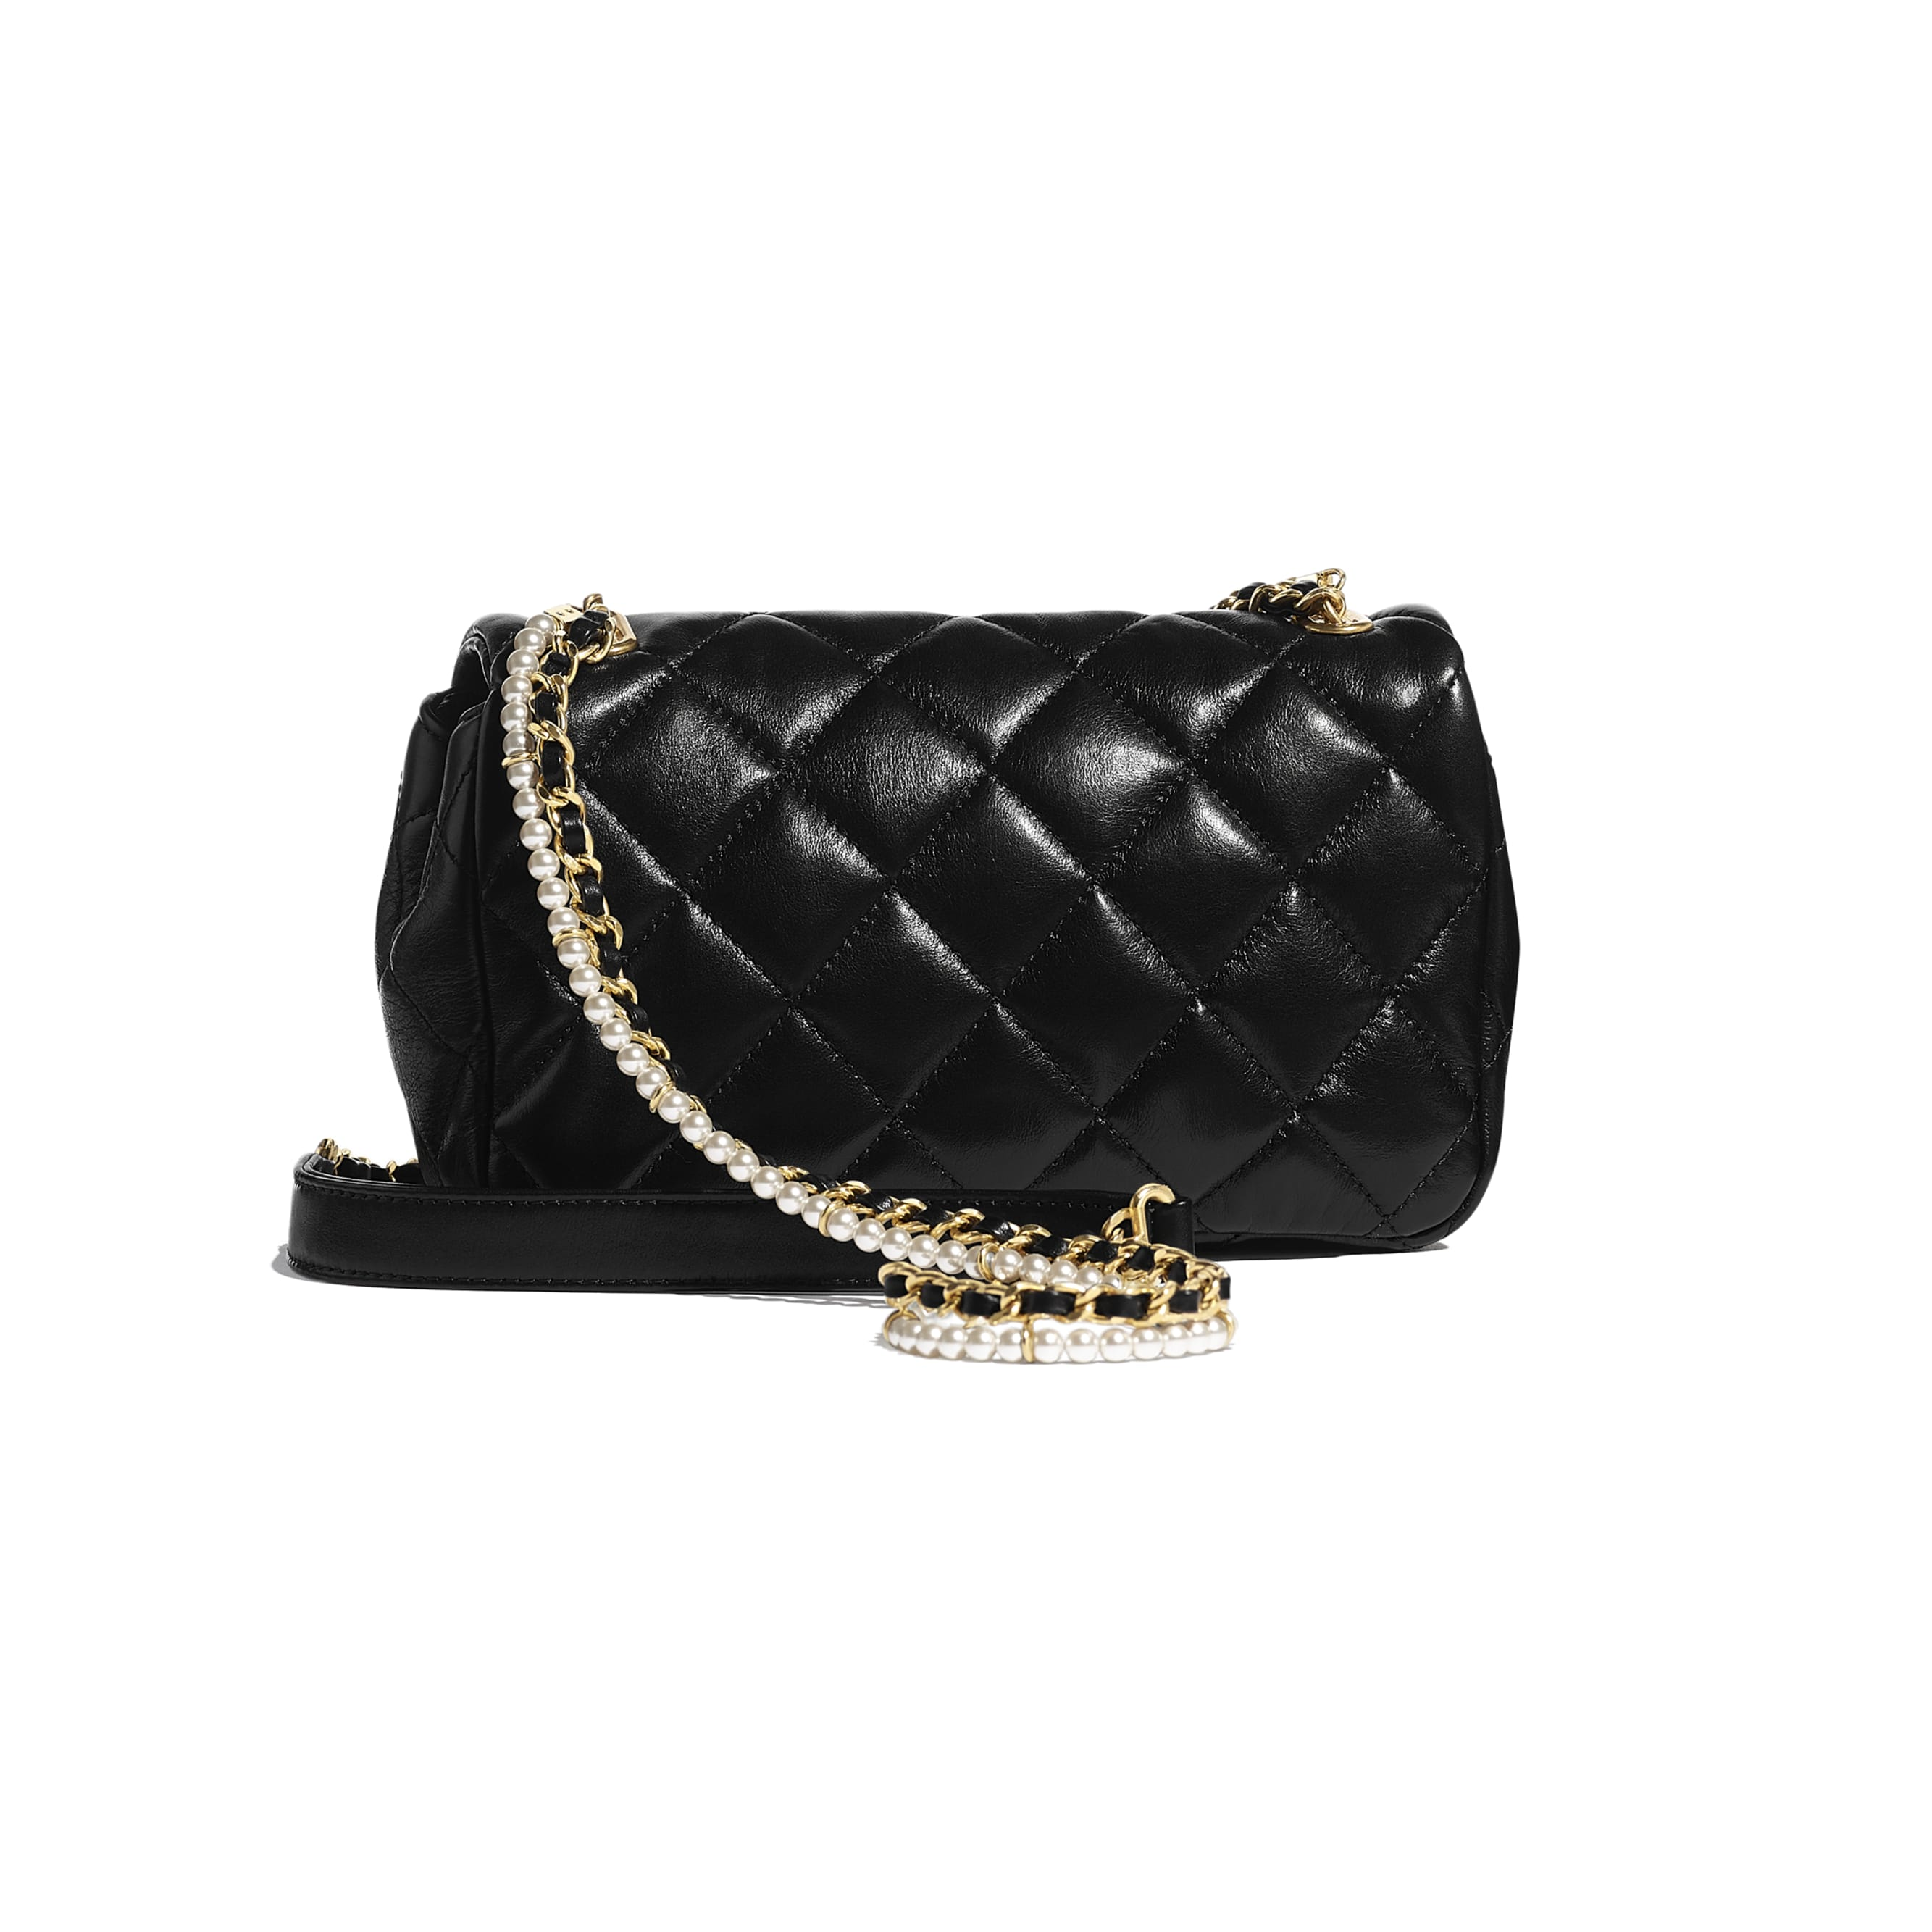 Flap Bag - Black - Calfskin, Crystal Pearls & Gold-Tone Metal - CHANEL - Alternative view - see standard sized version